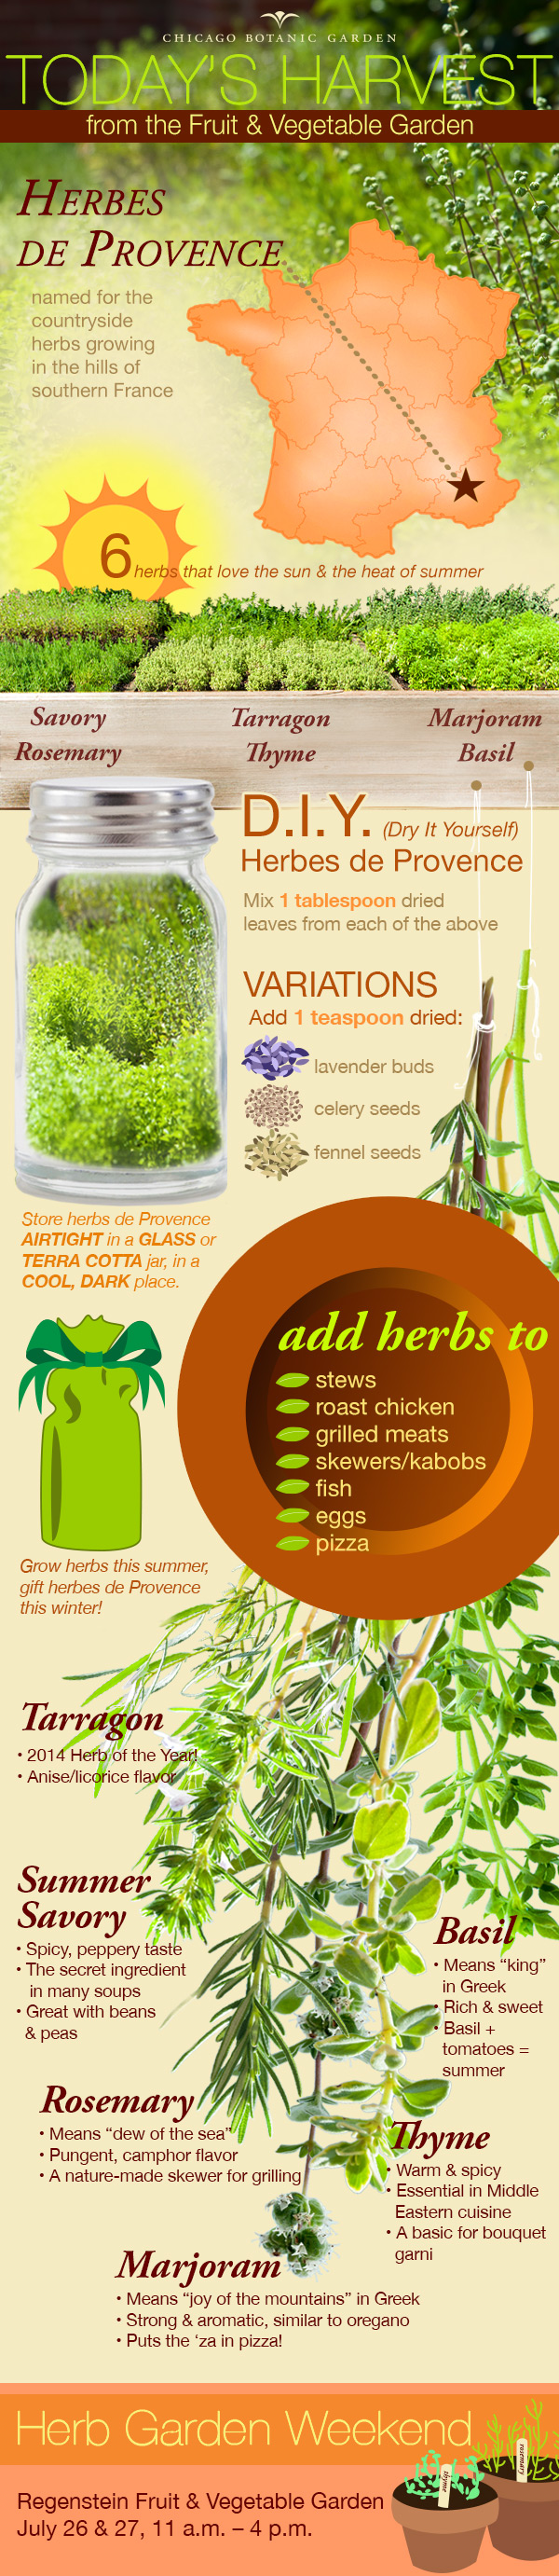 An infographic on cultivating the herbs of Herbs de Provence.